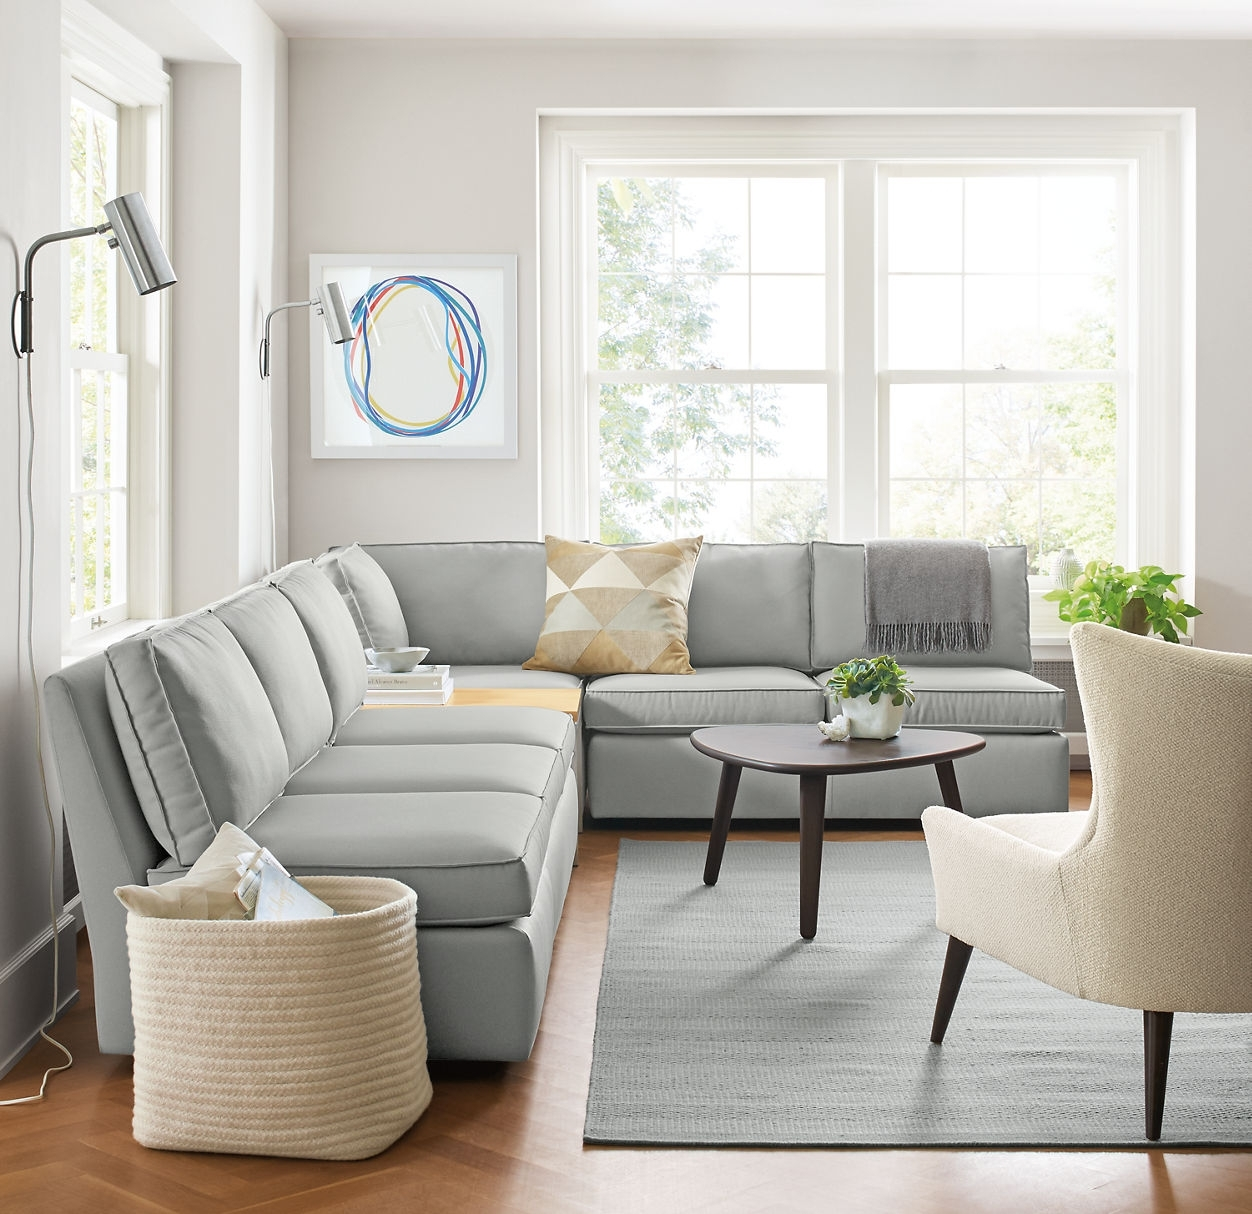 Modular Sectional Sofa Small Spaces: 10 Photos Sectional Sofas That Can Be Rearranged